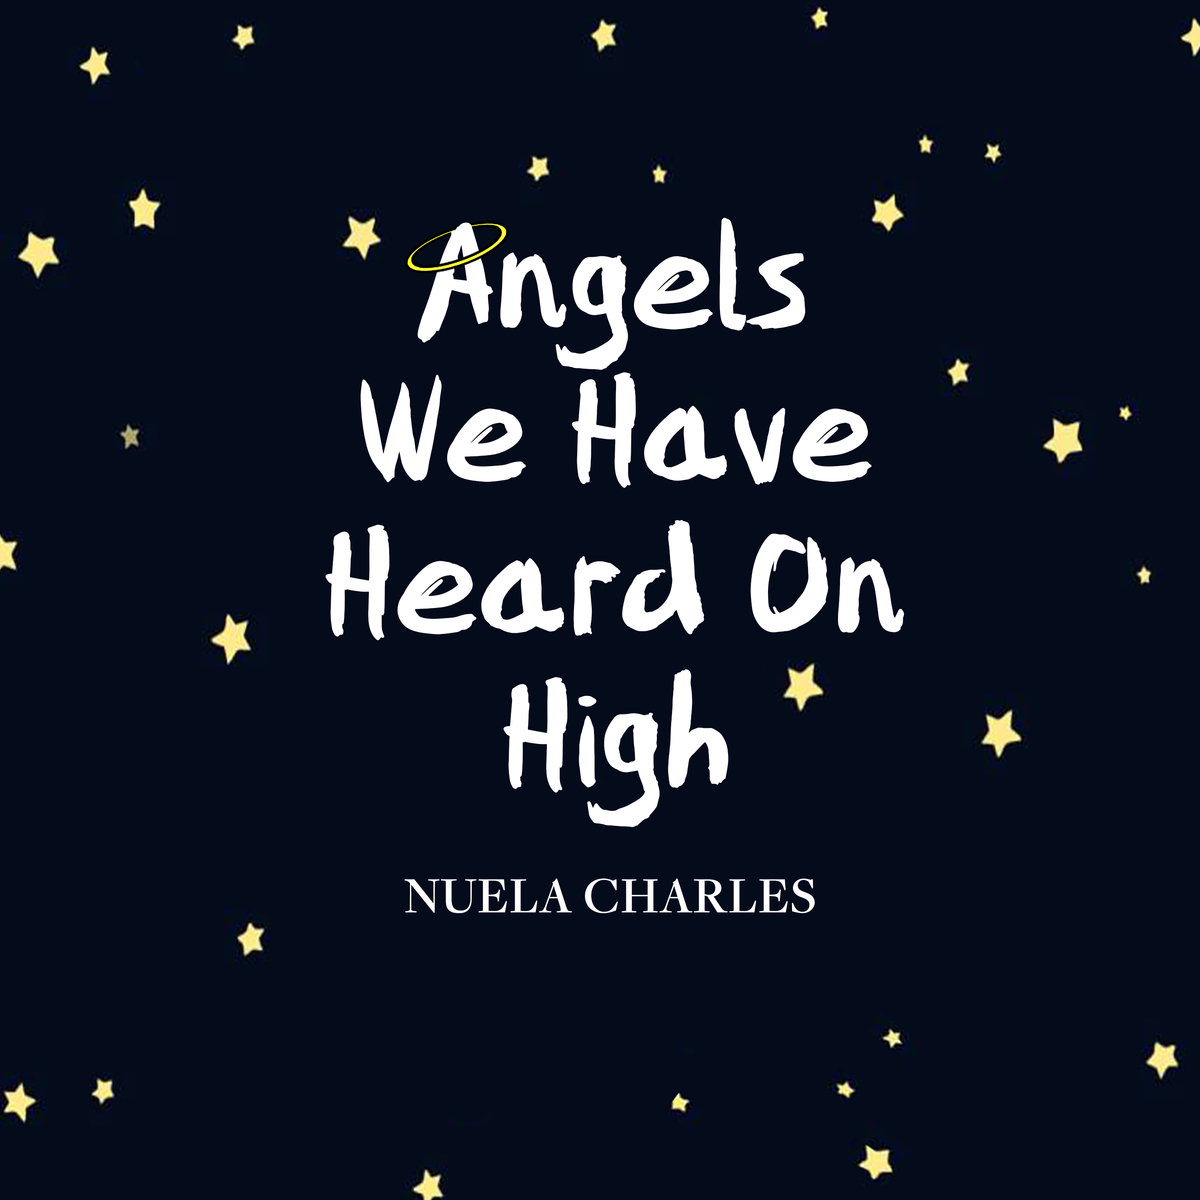 Music-Producer-Bradley-J-Simons-Velveteen-Audio-Nuela-Charles-Angels-We-Have-Heard-On-High.jpg